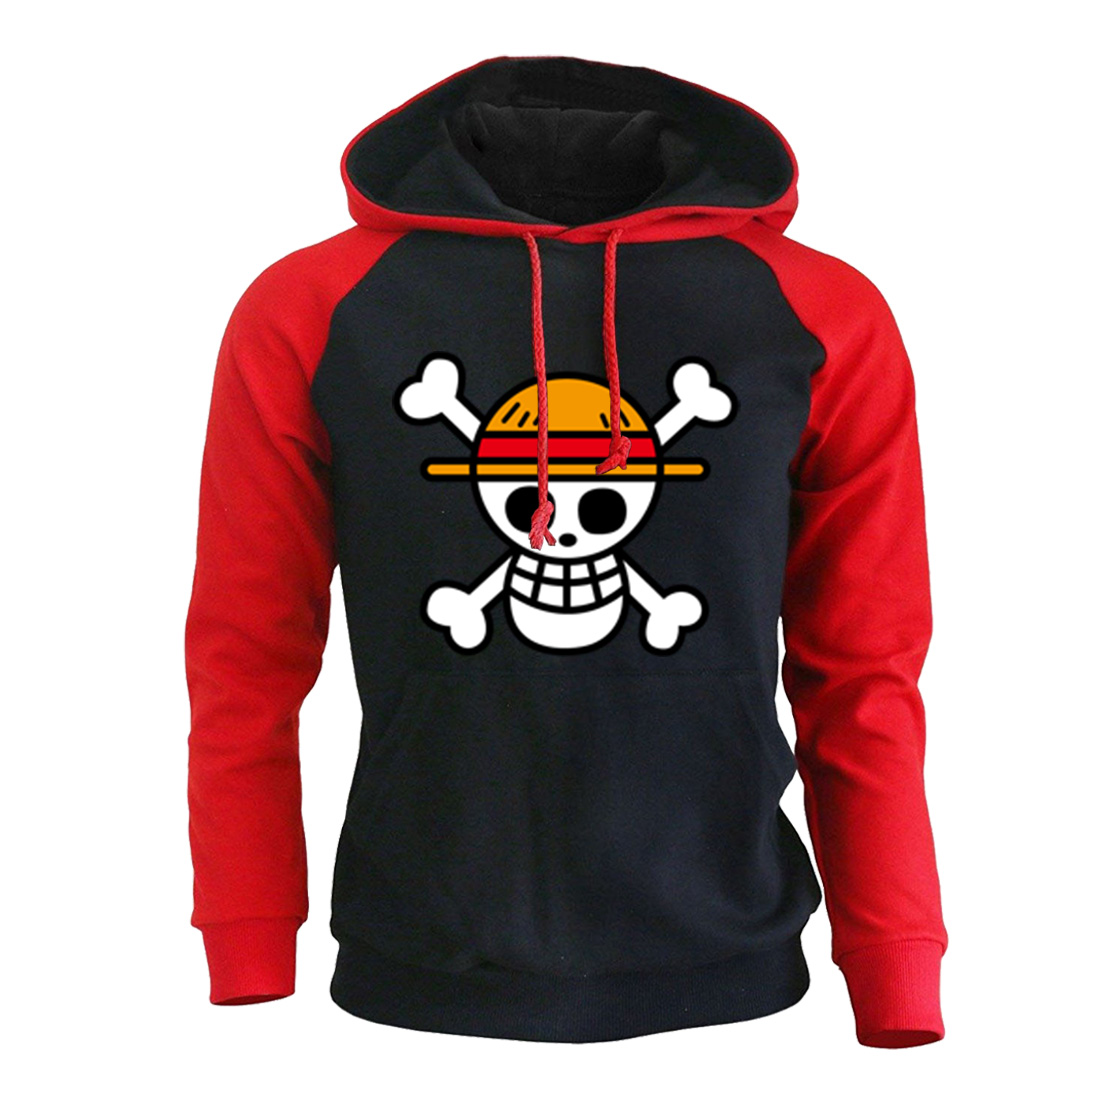 One Piece Luffy Cartoon Print Hoodie Sweatshirts 2019 Autumn Winter Men Hoodies With Cap Anime Harajuke Men's Hoody Pullover